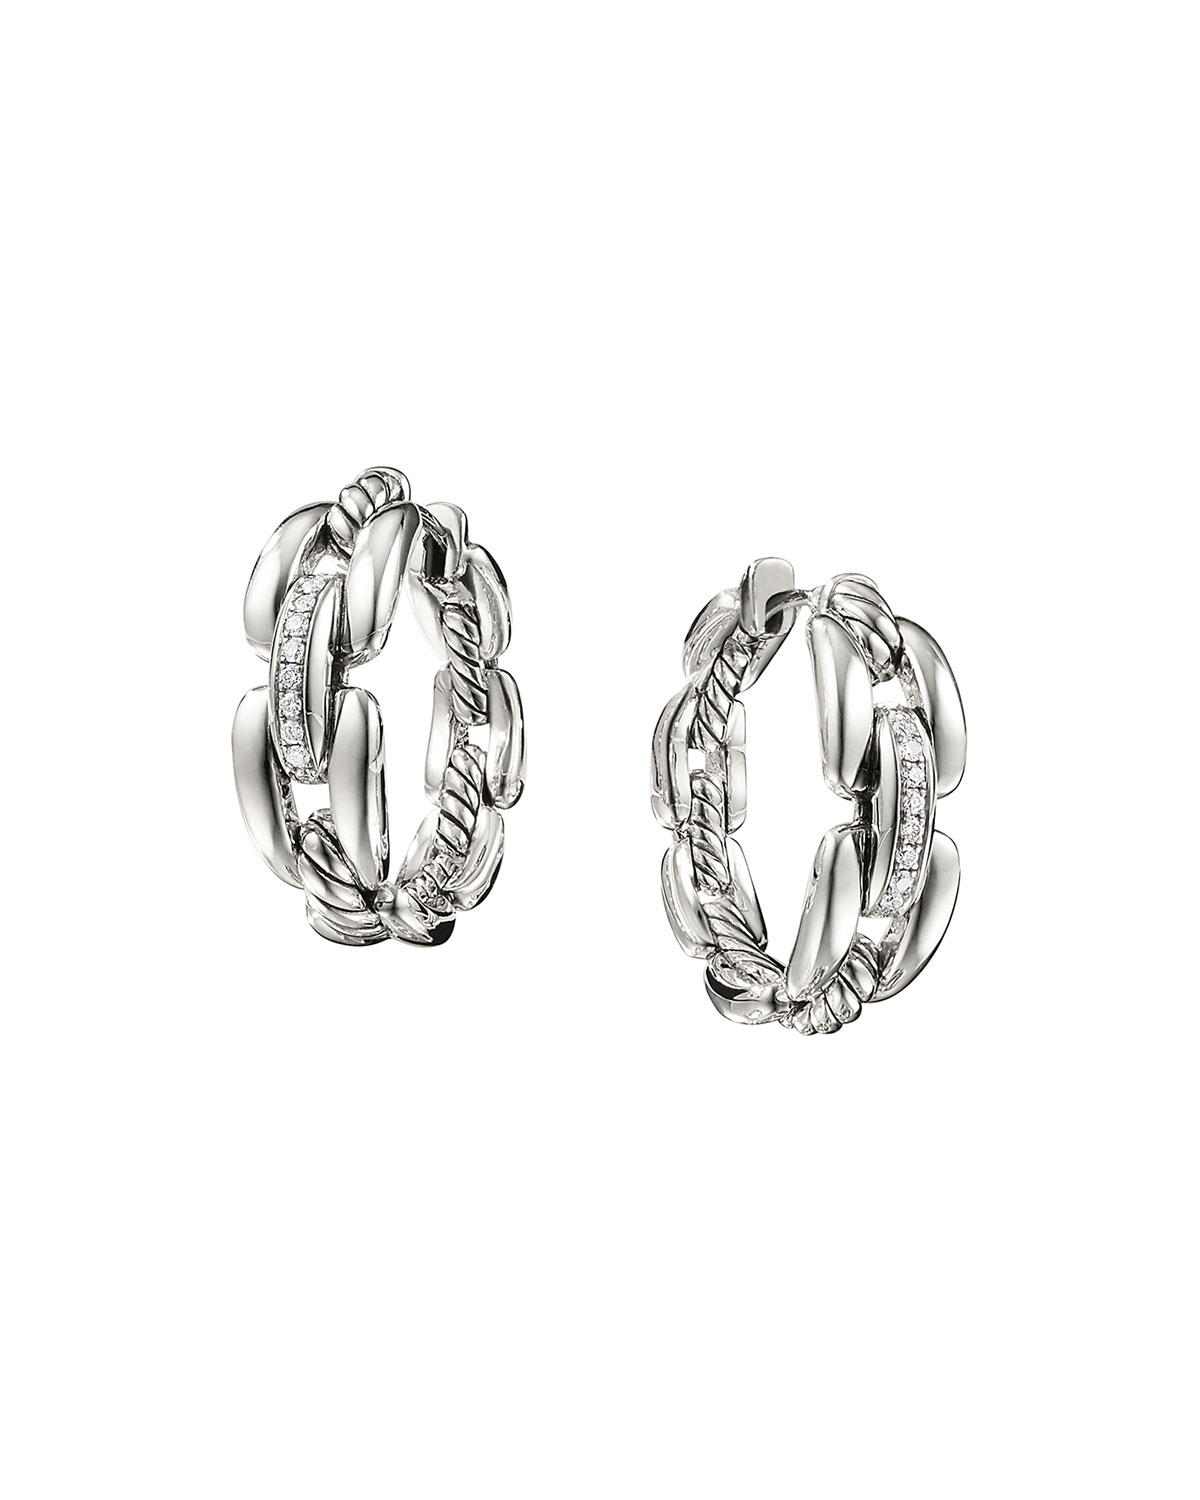 Wellesley Sterling Silver Small Hoop Earrings With Diamonds